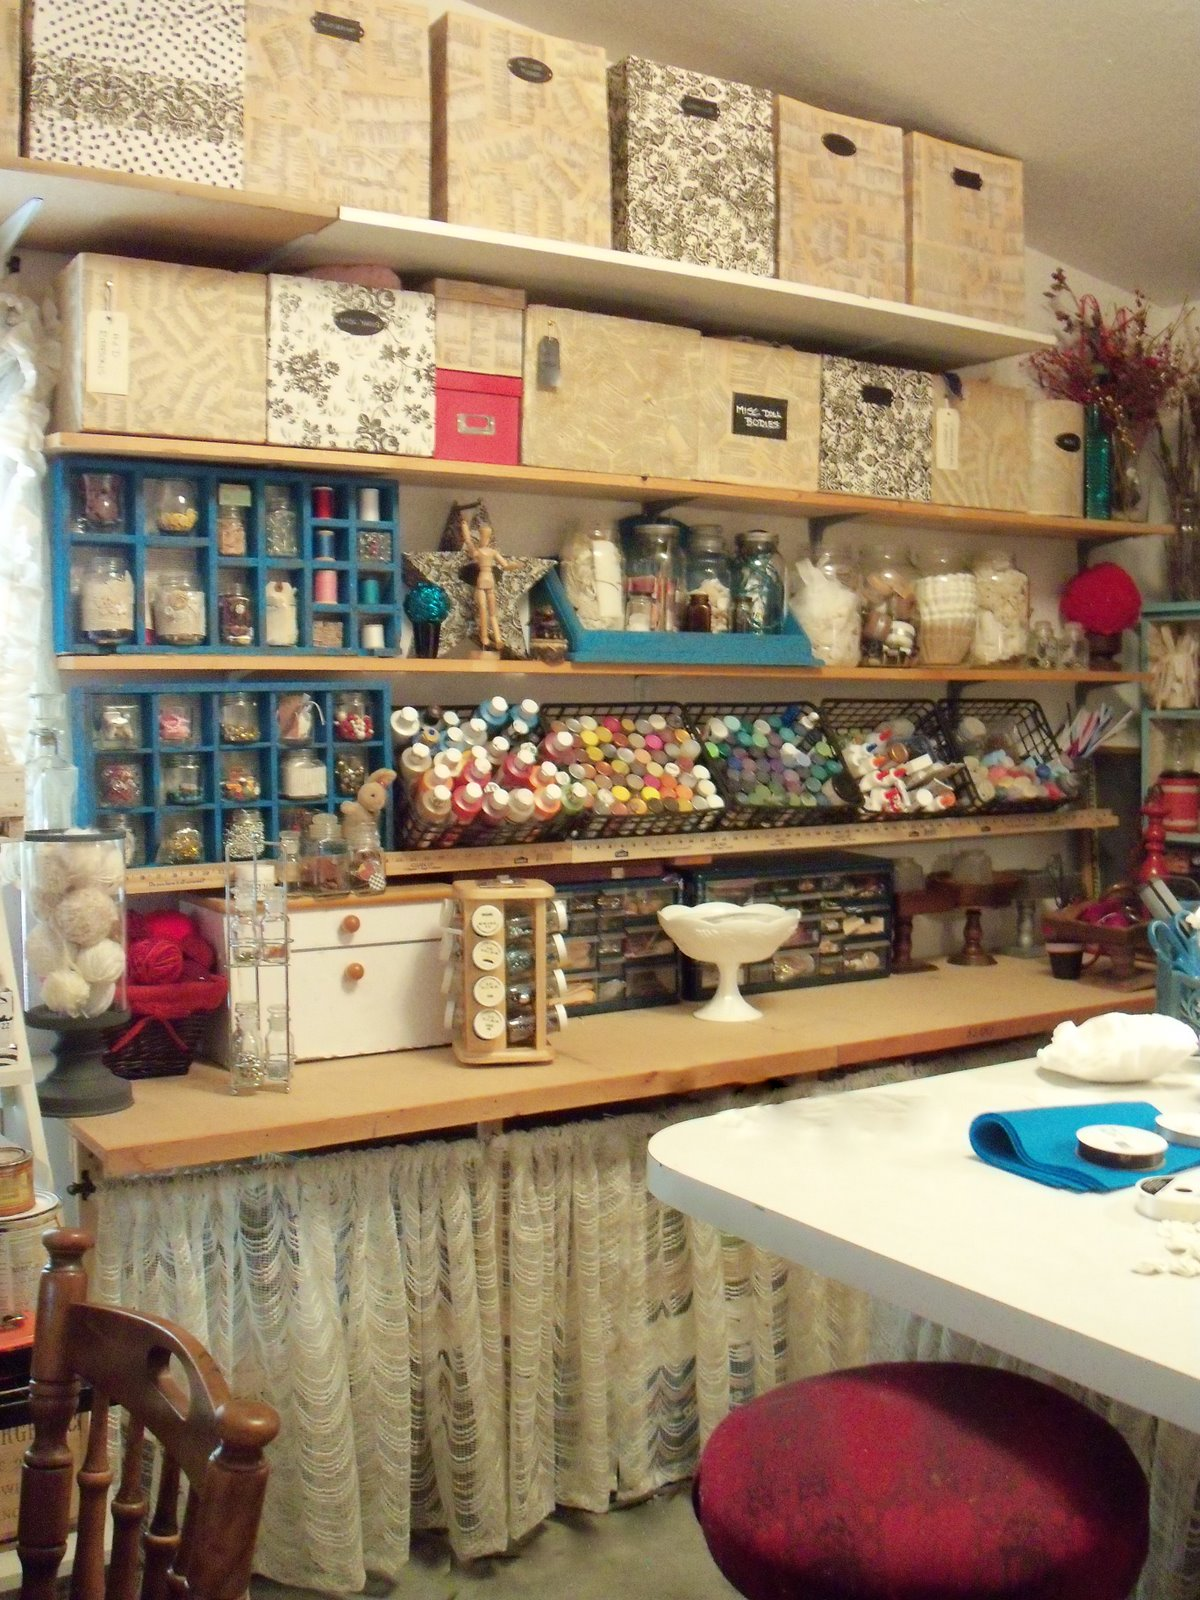 10x10 Room Layout Craft: Make The Best Of Things: Craft Studio Tour-Bottles And